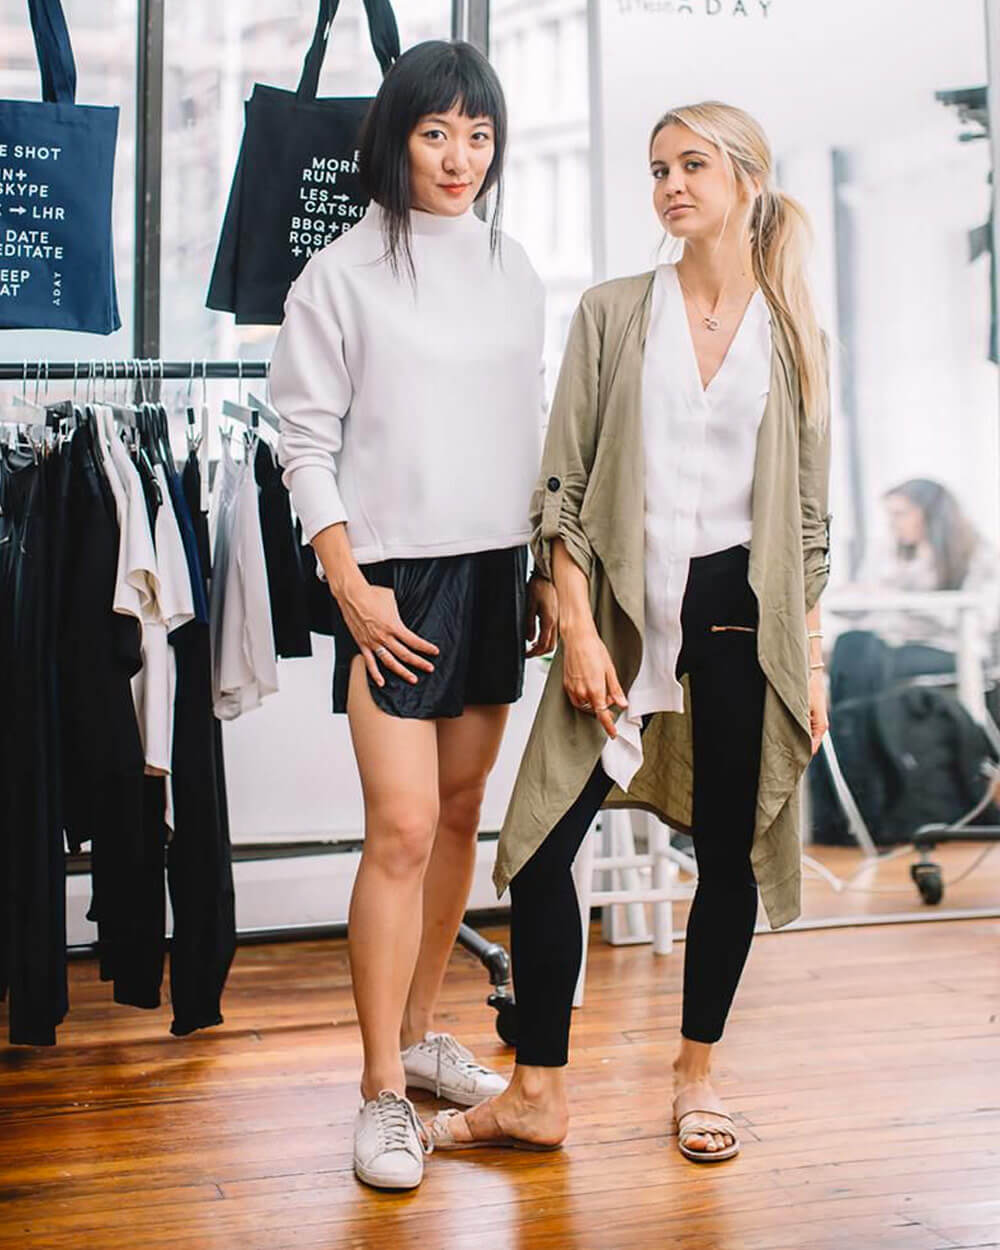 ADAY sustainable fashion